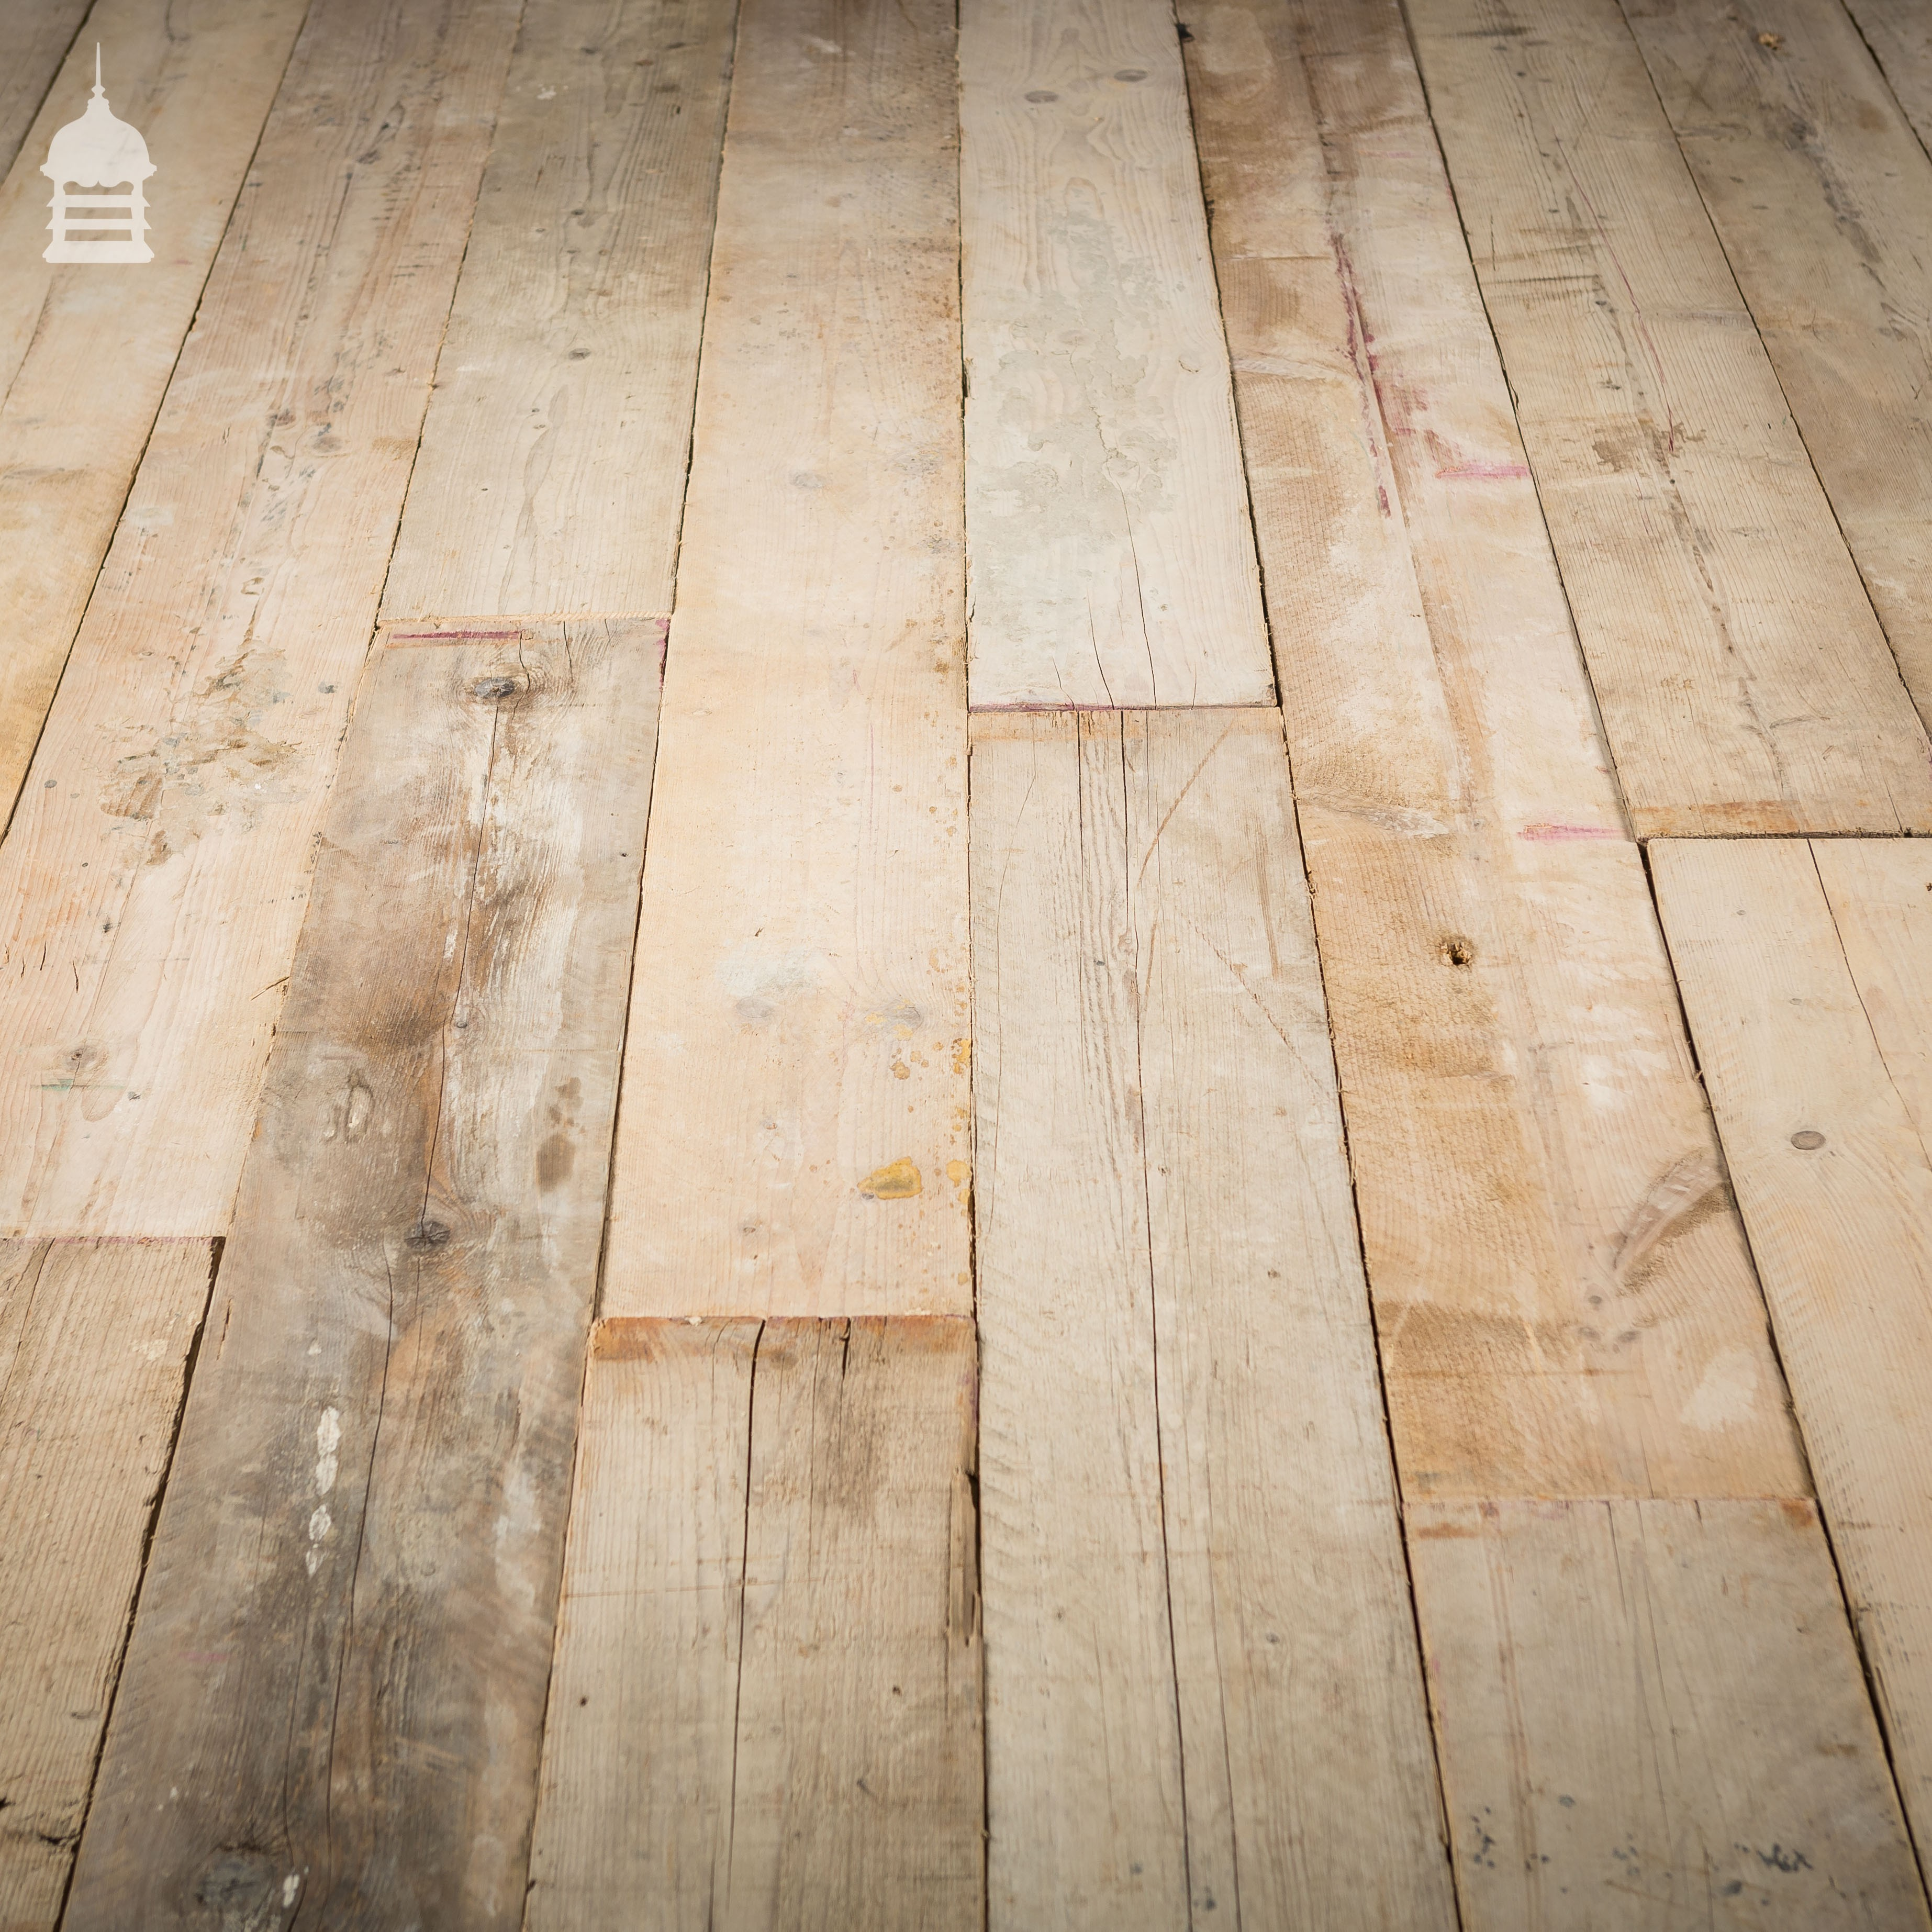 Reclaimed Scaffold Boards Cut Down to 20mm Thick Flooring ...